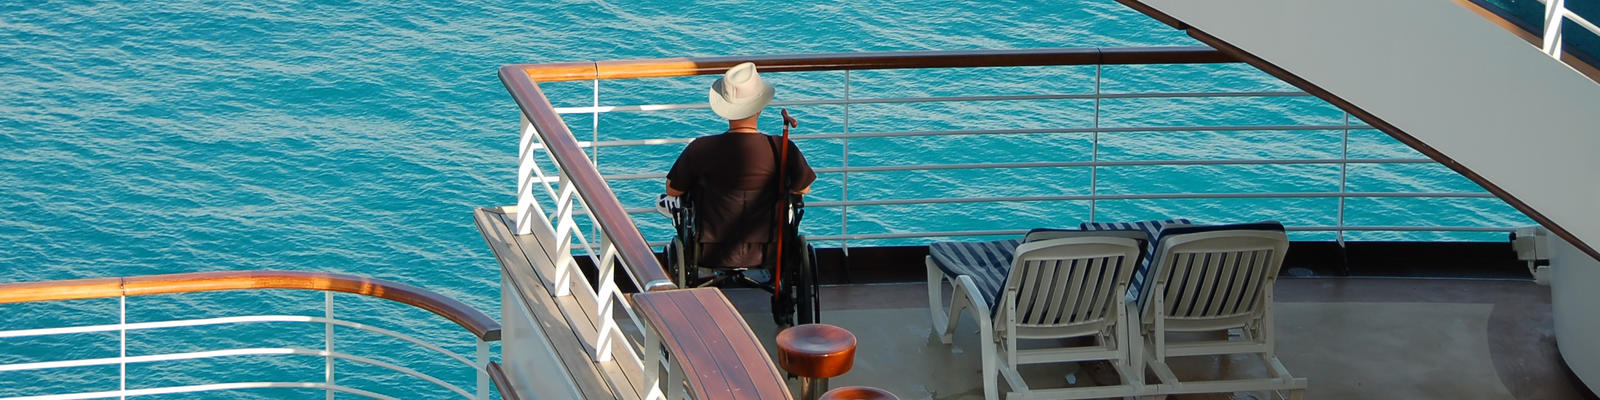 Accessible Cruise Ships (Photo: Ivan Cholakov/Shutterstock)